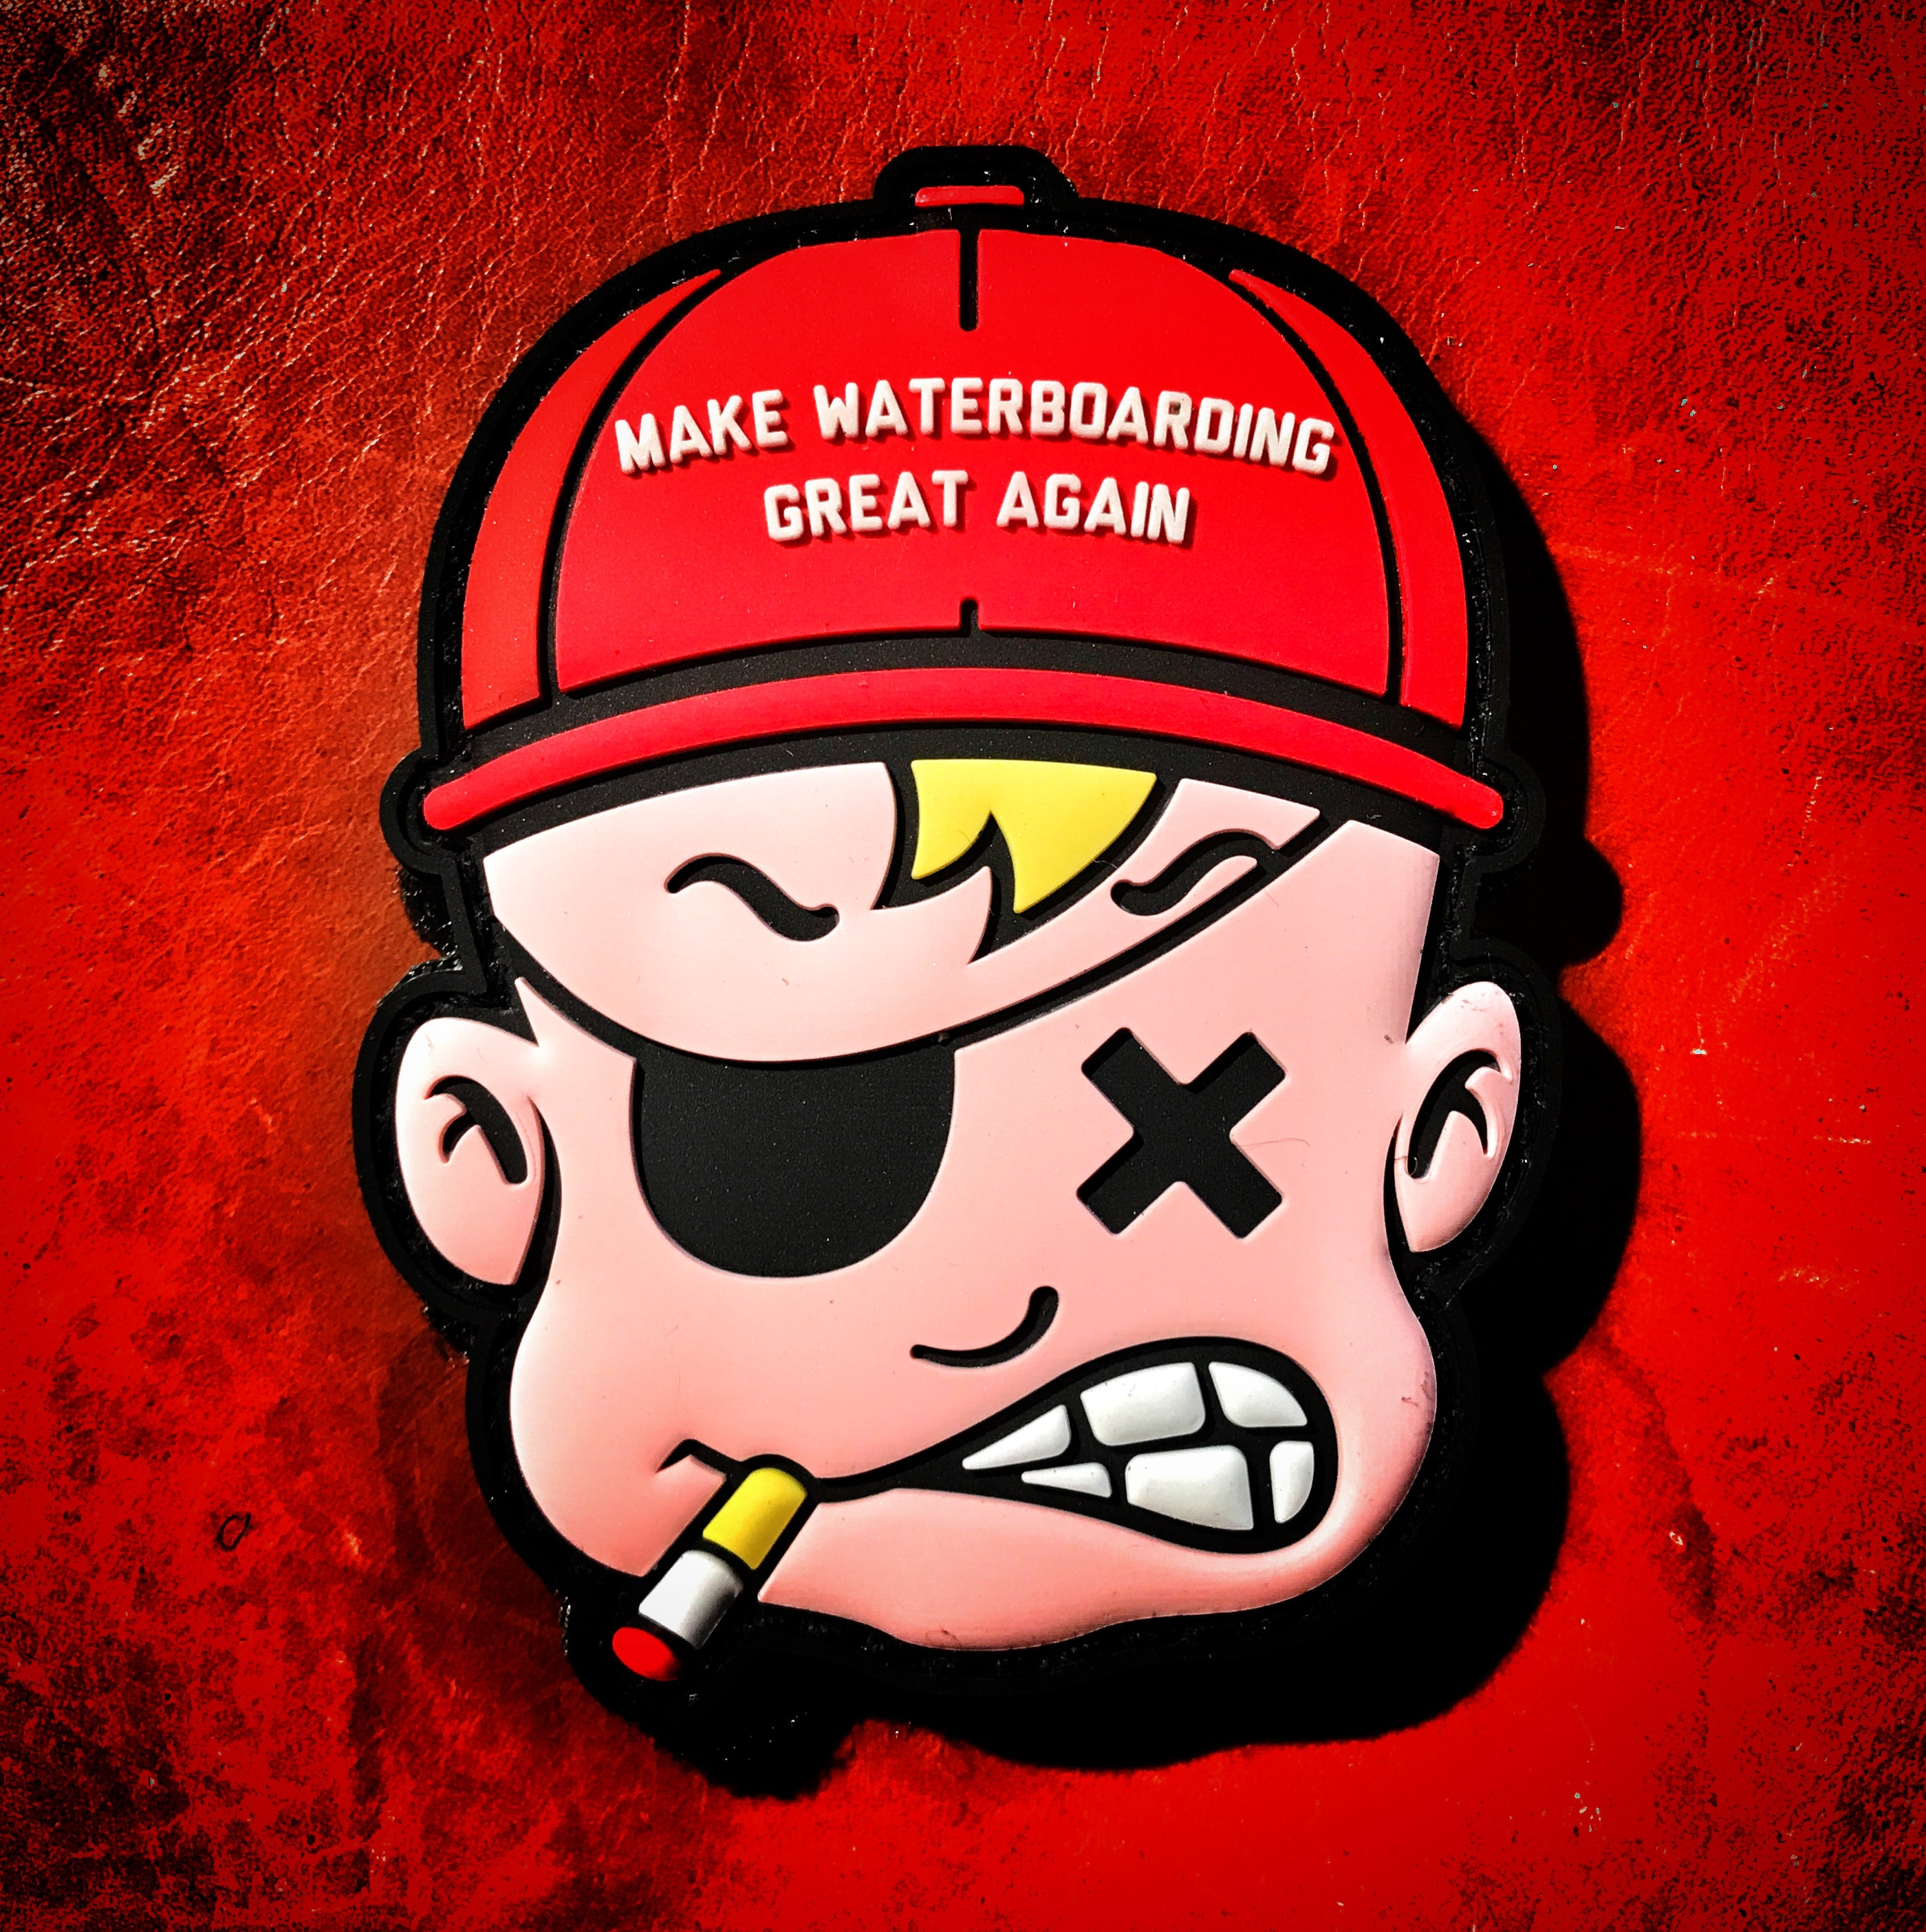 Dangerous Goods Danger Joe Make Waterboarding Great Again PVC Morale Patch